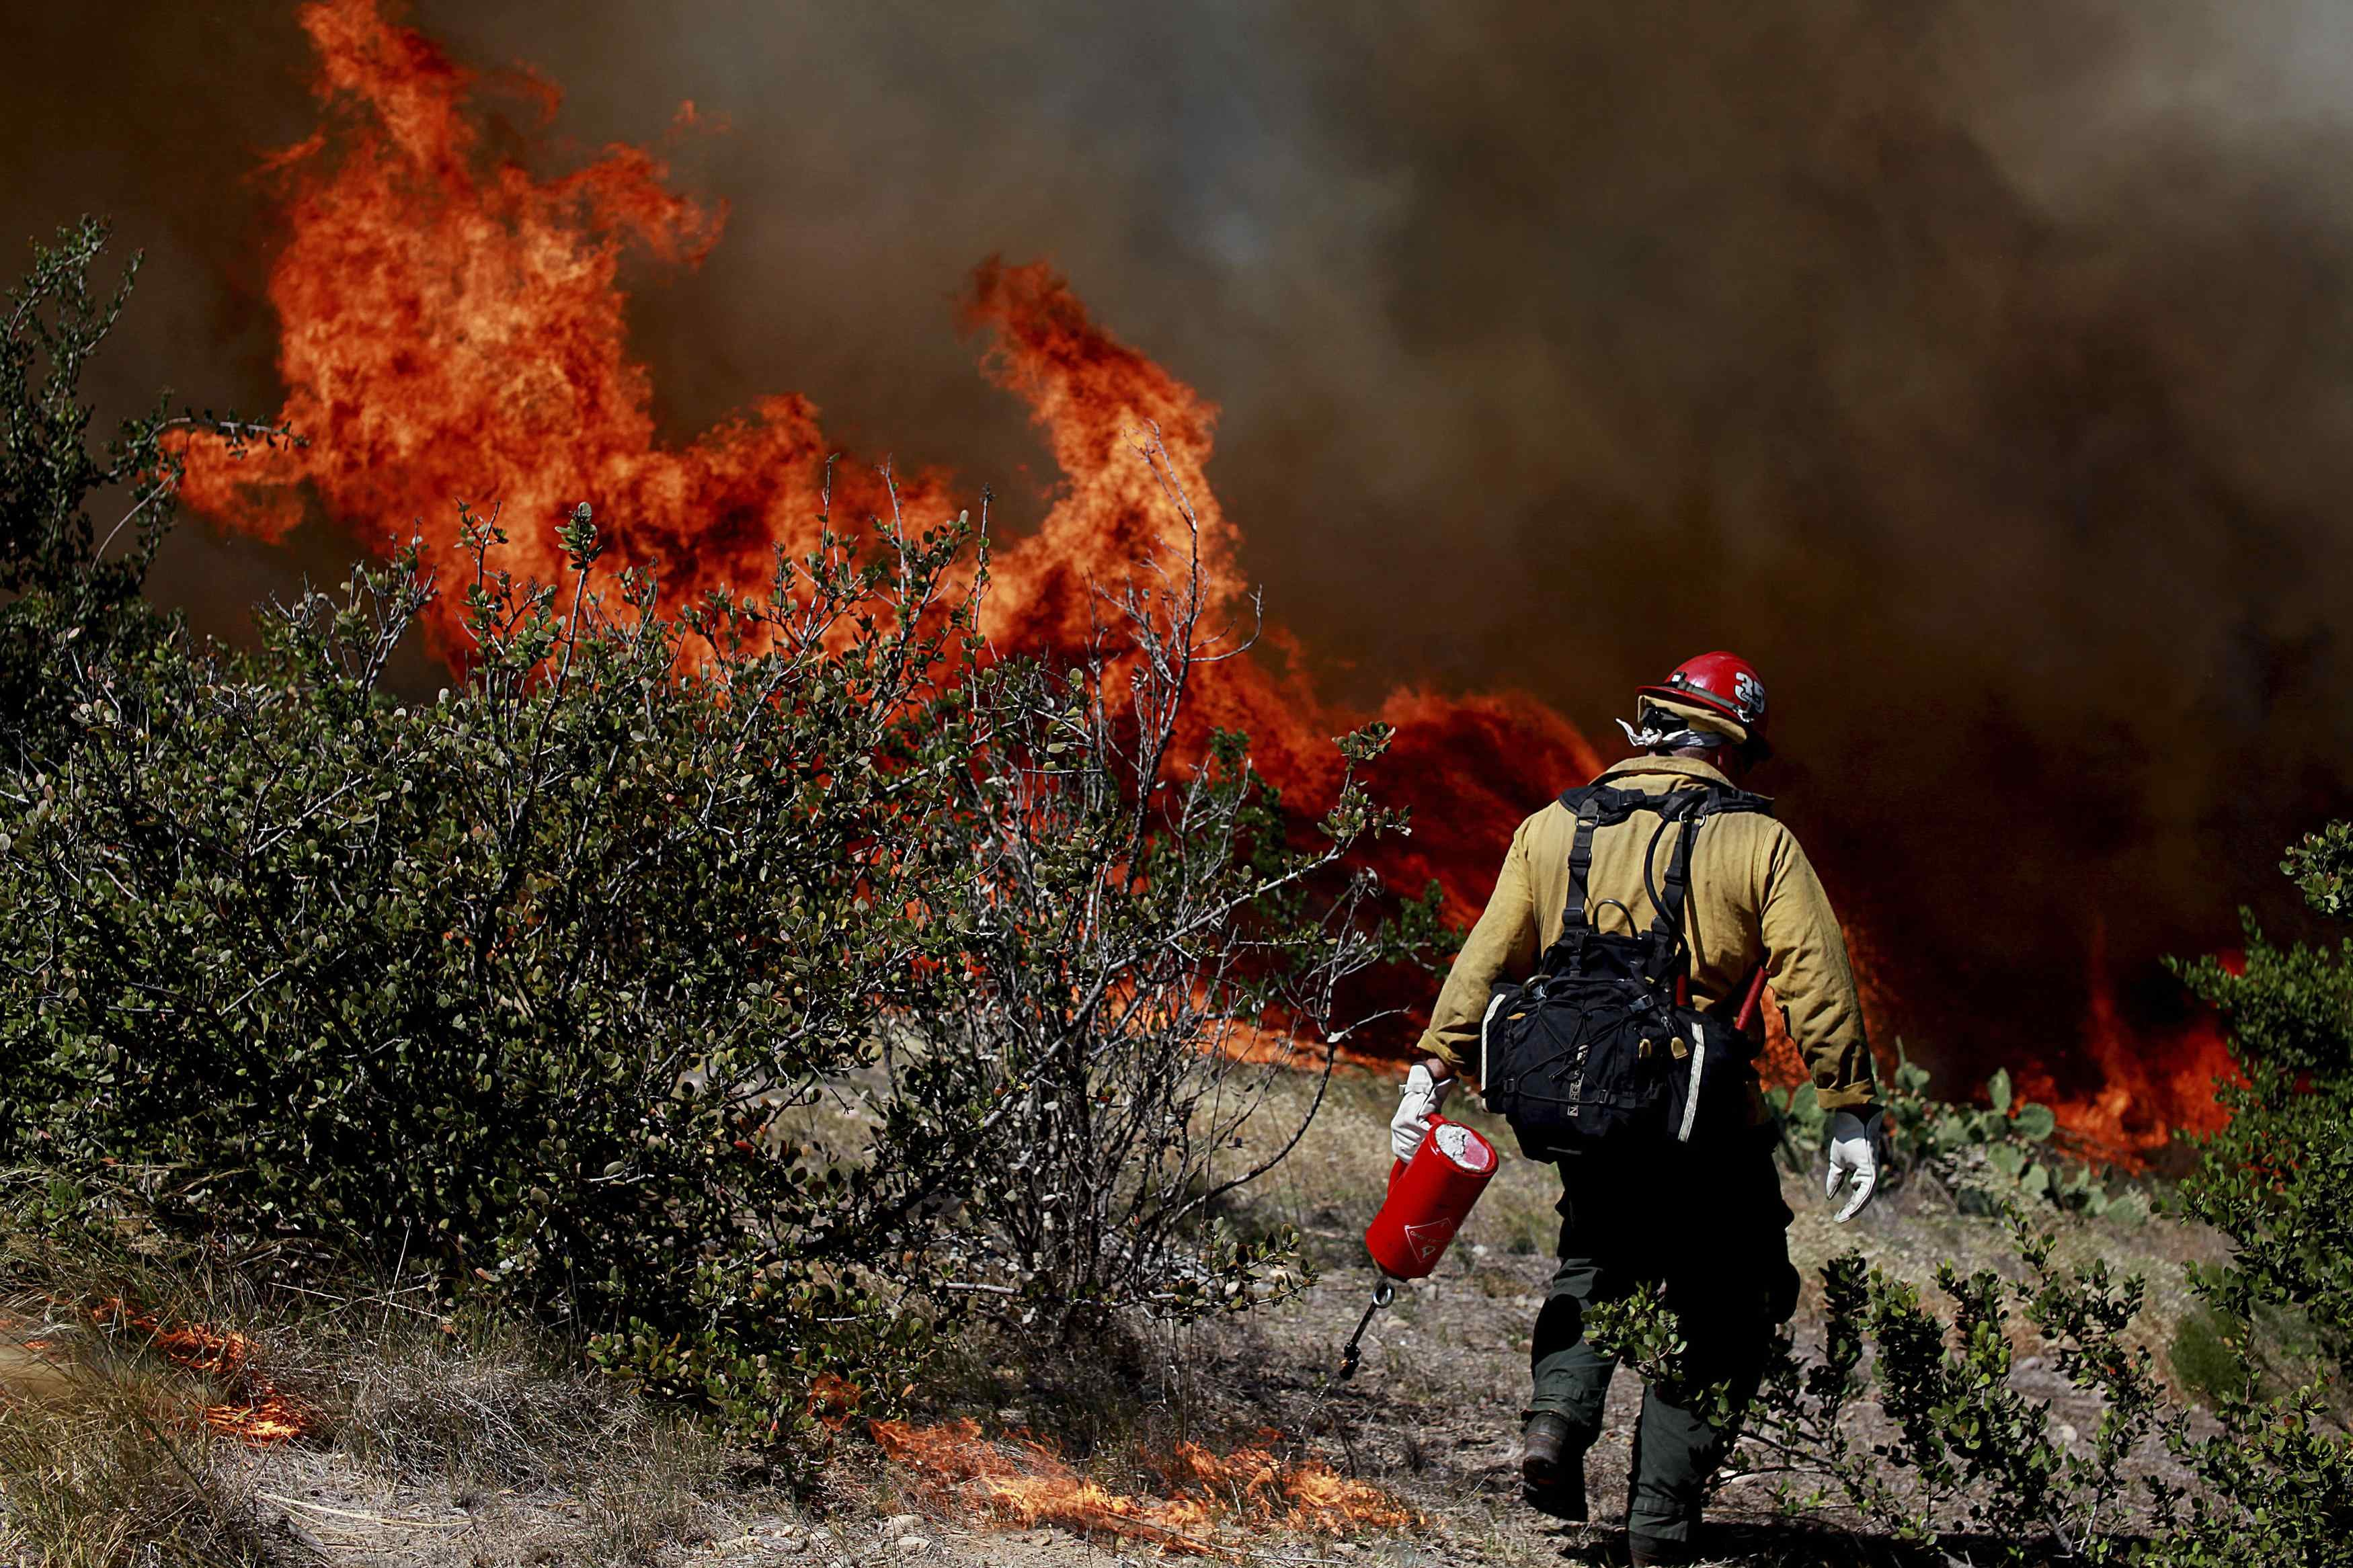 A firefighter battles the fire near San Diego on May 13, 2014.